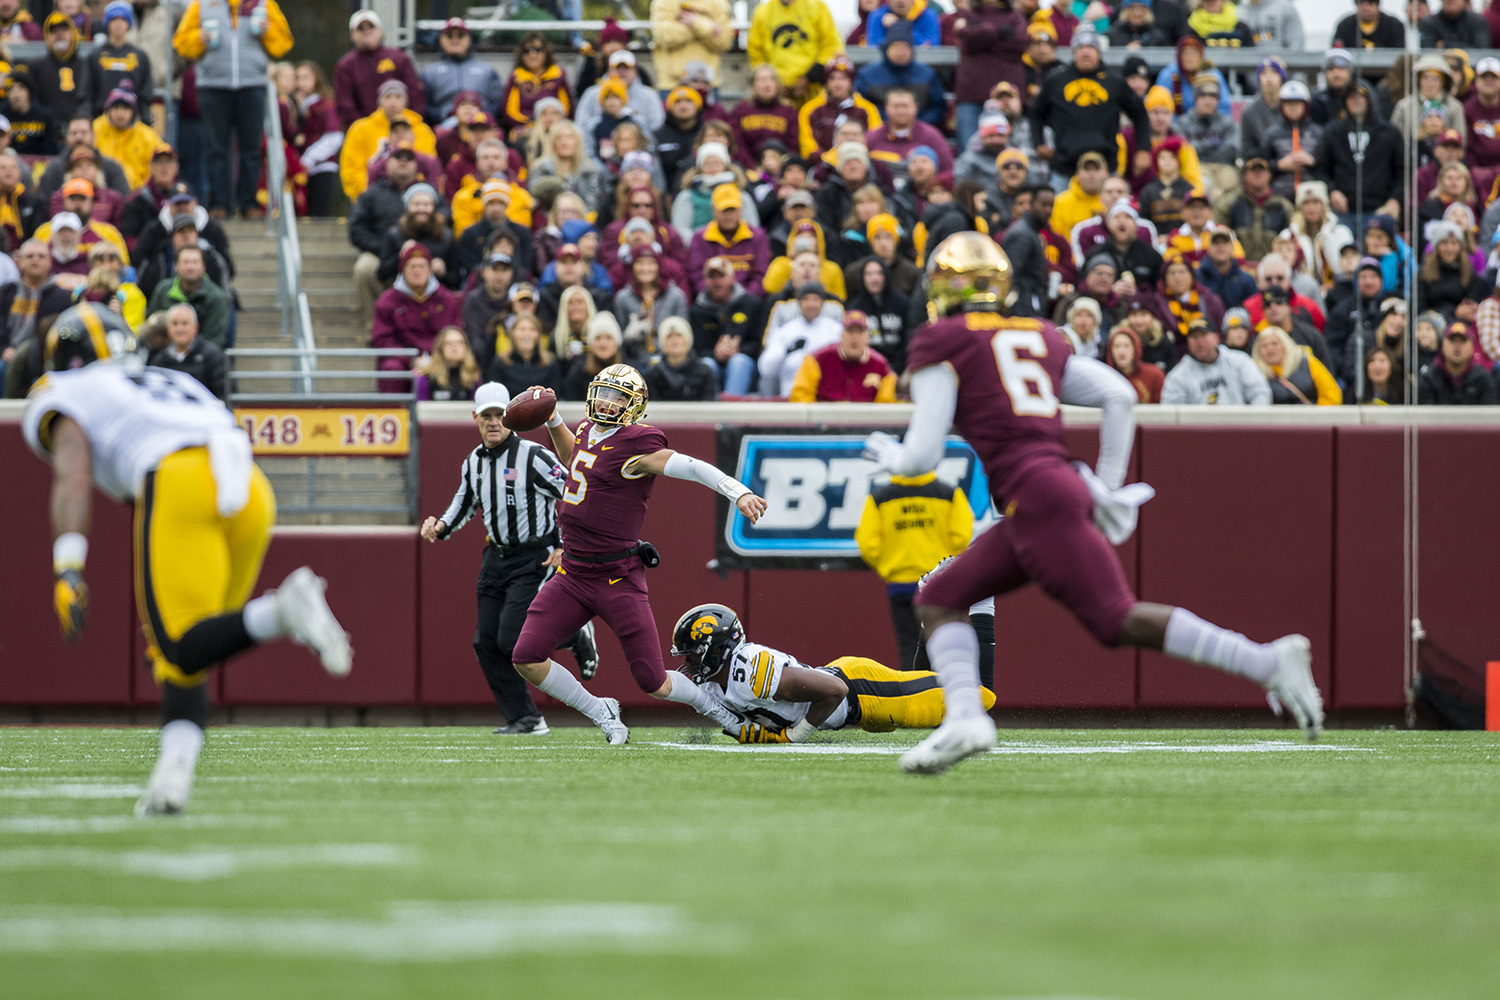 Minnesota+quarterback+Zach+Annexsted+attempts+to+shed+Iowa%27s+Chauncey+Golston%27s+tackle+during+the+Iowa%2FMinnesota+football+game+at+TCF+Bank+Stadium+in+Minneapolis+on+Saturday%2C+October+6%2C+2018.+The+Hawkeyes+defeated+the+Golden+Gophers%2C+48-31.+